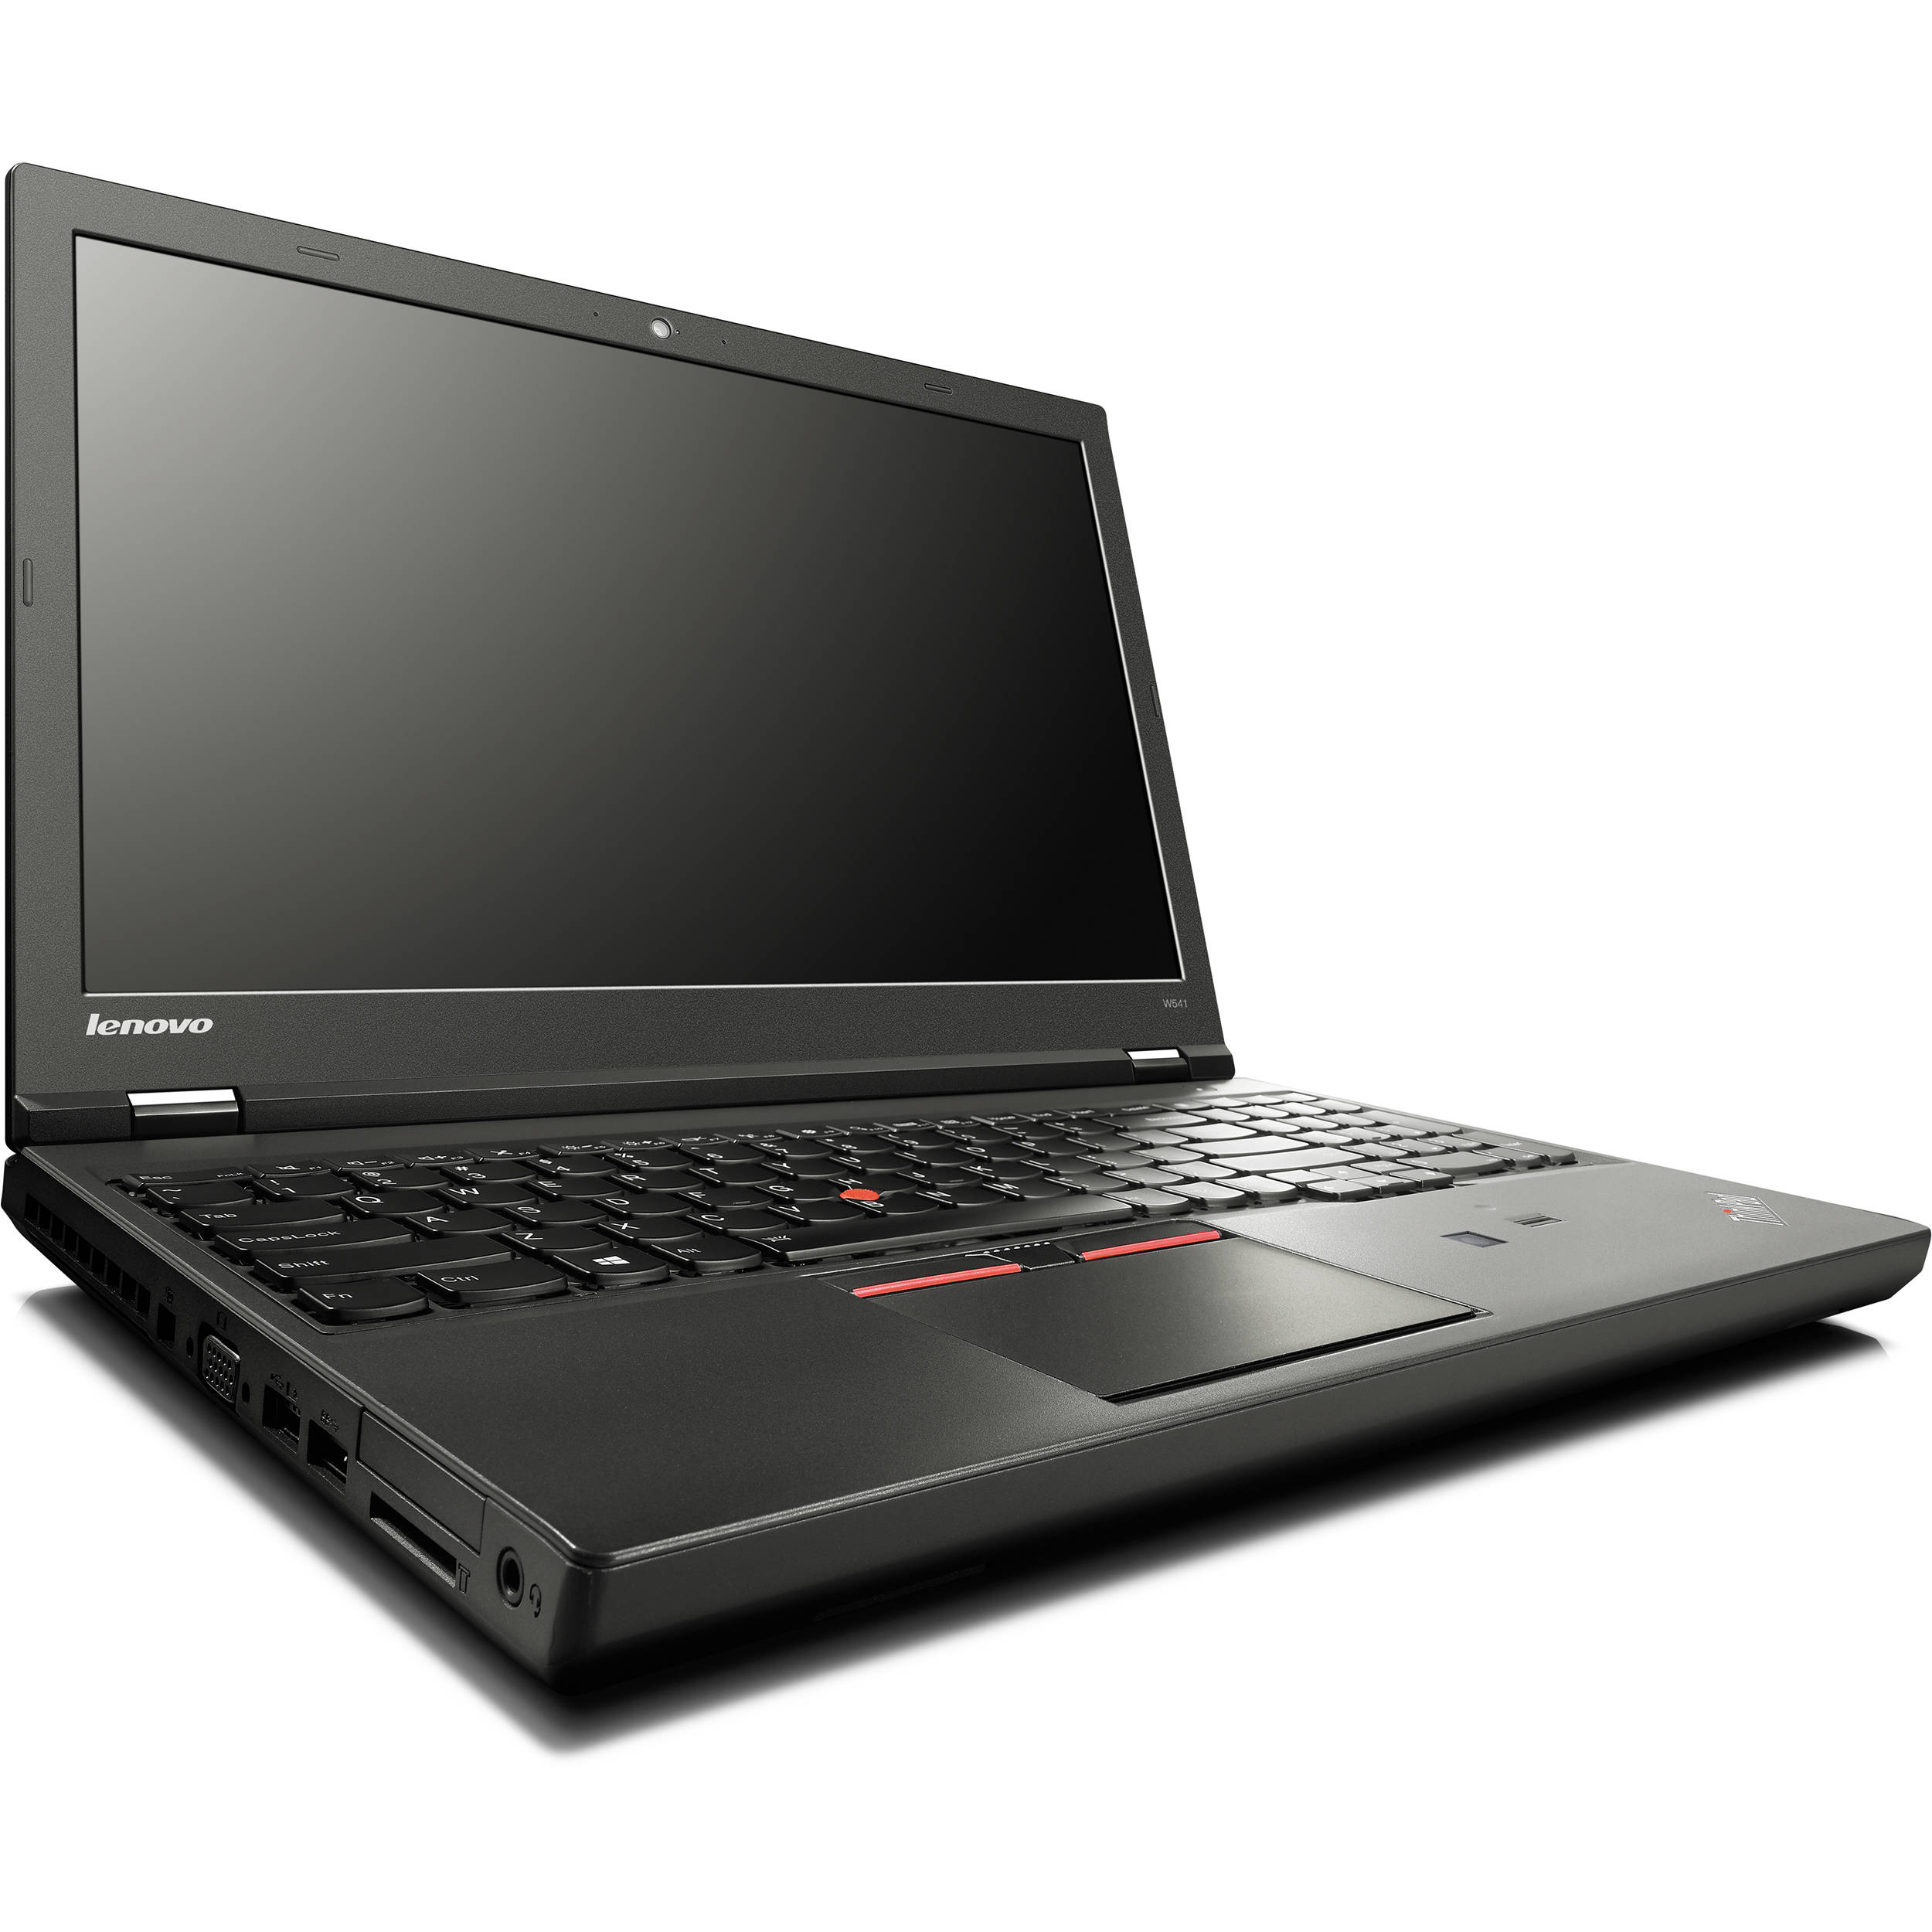 ThinkPad W541 | Mobile Workstation | Lenovo US Core™ i7 VGA NVIDIA Quadro 15.6inh